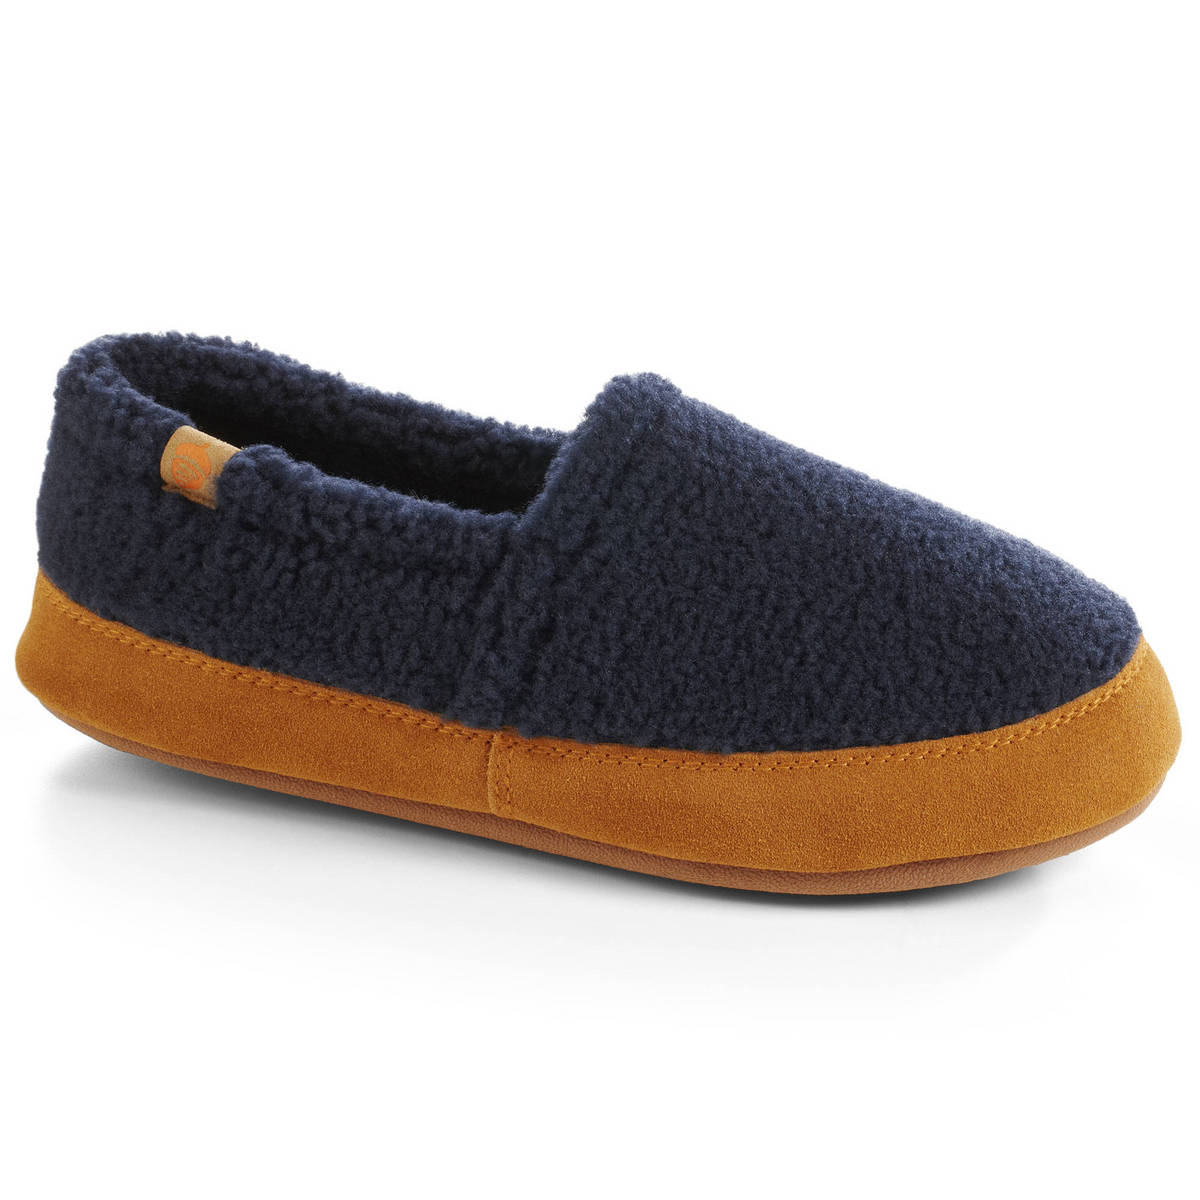 Acorn Women's Acorn Moc Slippers